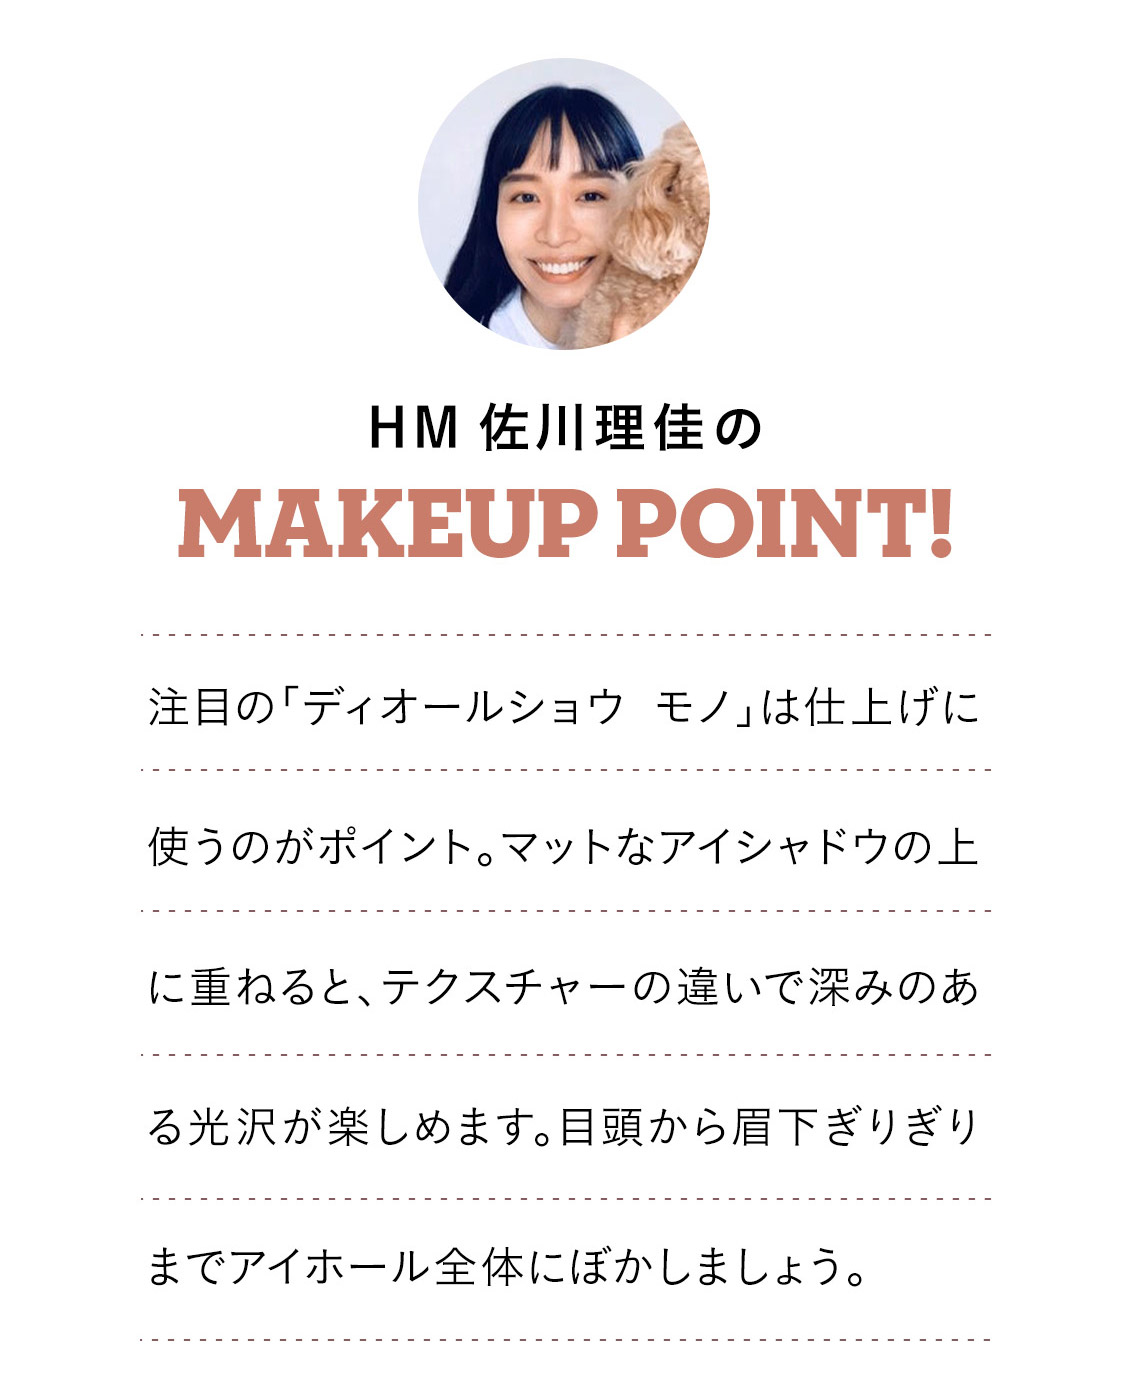 RIKA'S MAKE UP POINT